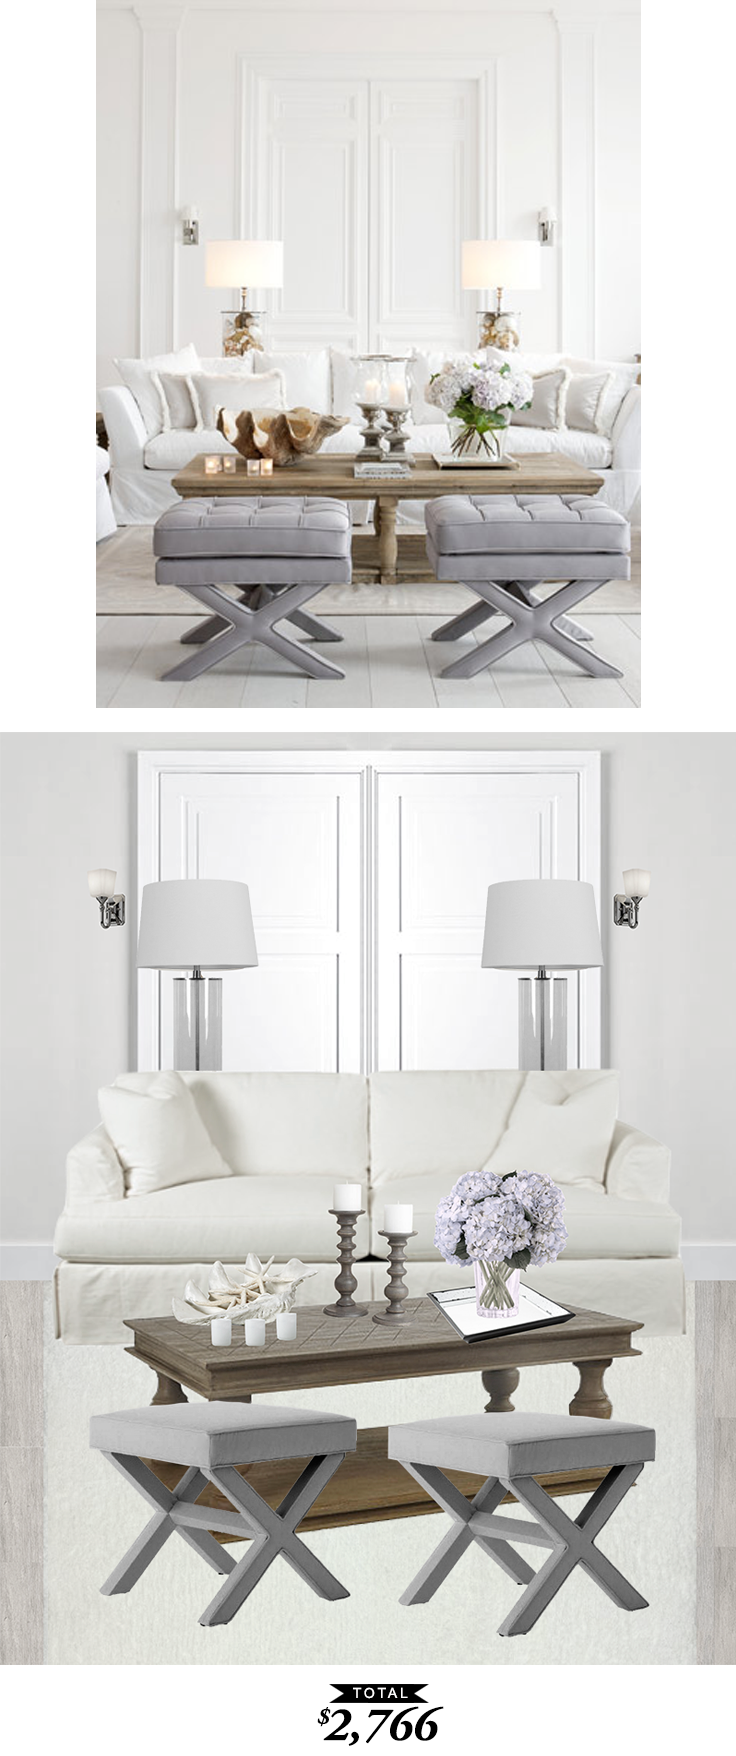 stylish coastal living rooms ideas e2. A Bright, White And Airy Coastal Living Room From Claire Hammond Interiors Recreated By @ Stylish Rooms Ideas E2